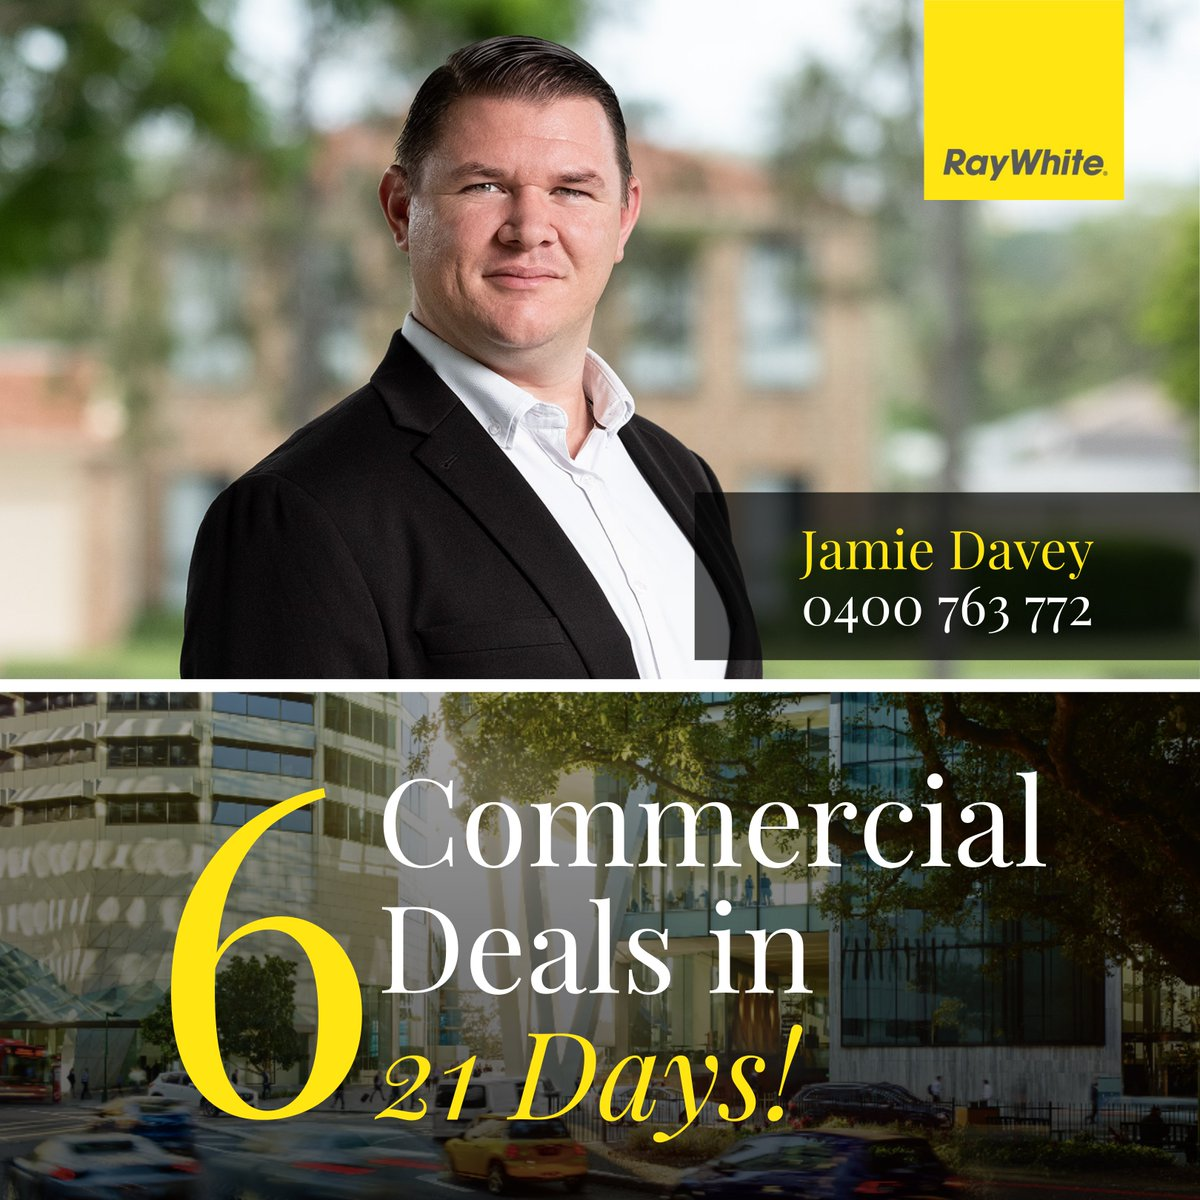 When we do commercial, we do it like this! 🔥  ☎️ 𝙅𝙖𝙢𝙞𝙚 𝘿𝙖𝙫𝙚𝙮 - 0400 763 772  #RayWhiteMarsden #Commercial #JamieDavey https://t.co/yvx9urxtfc